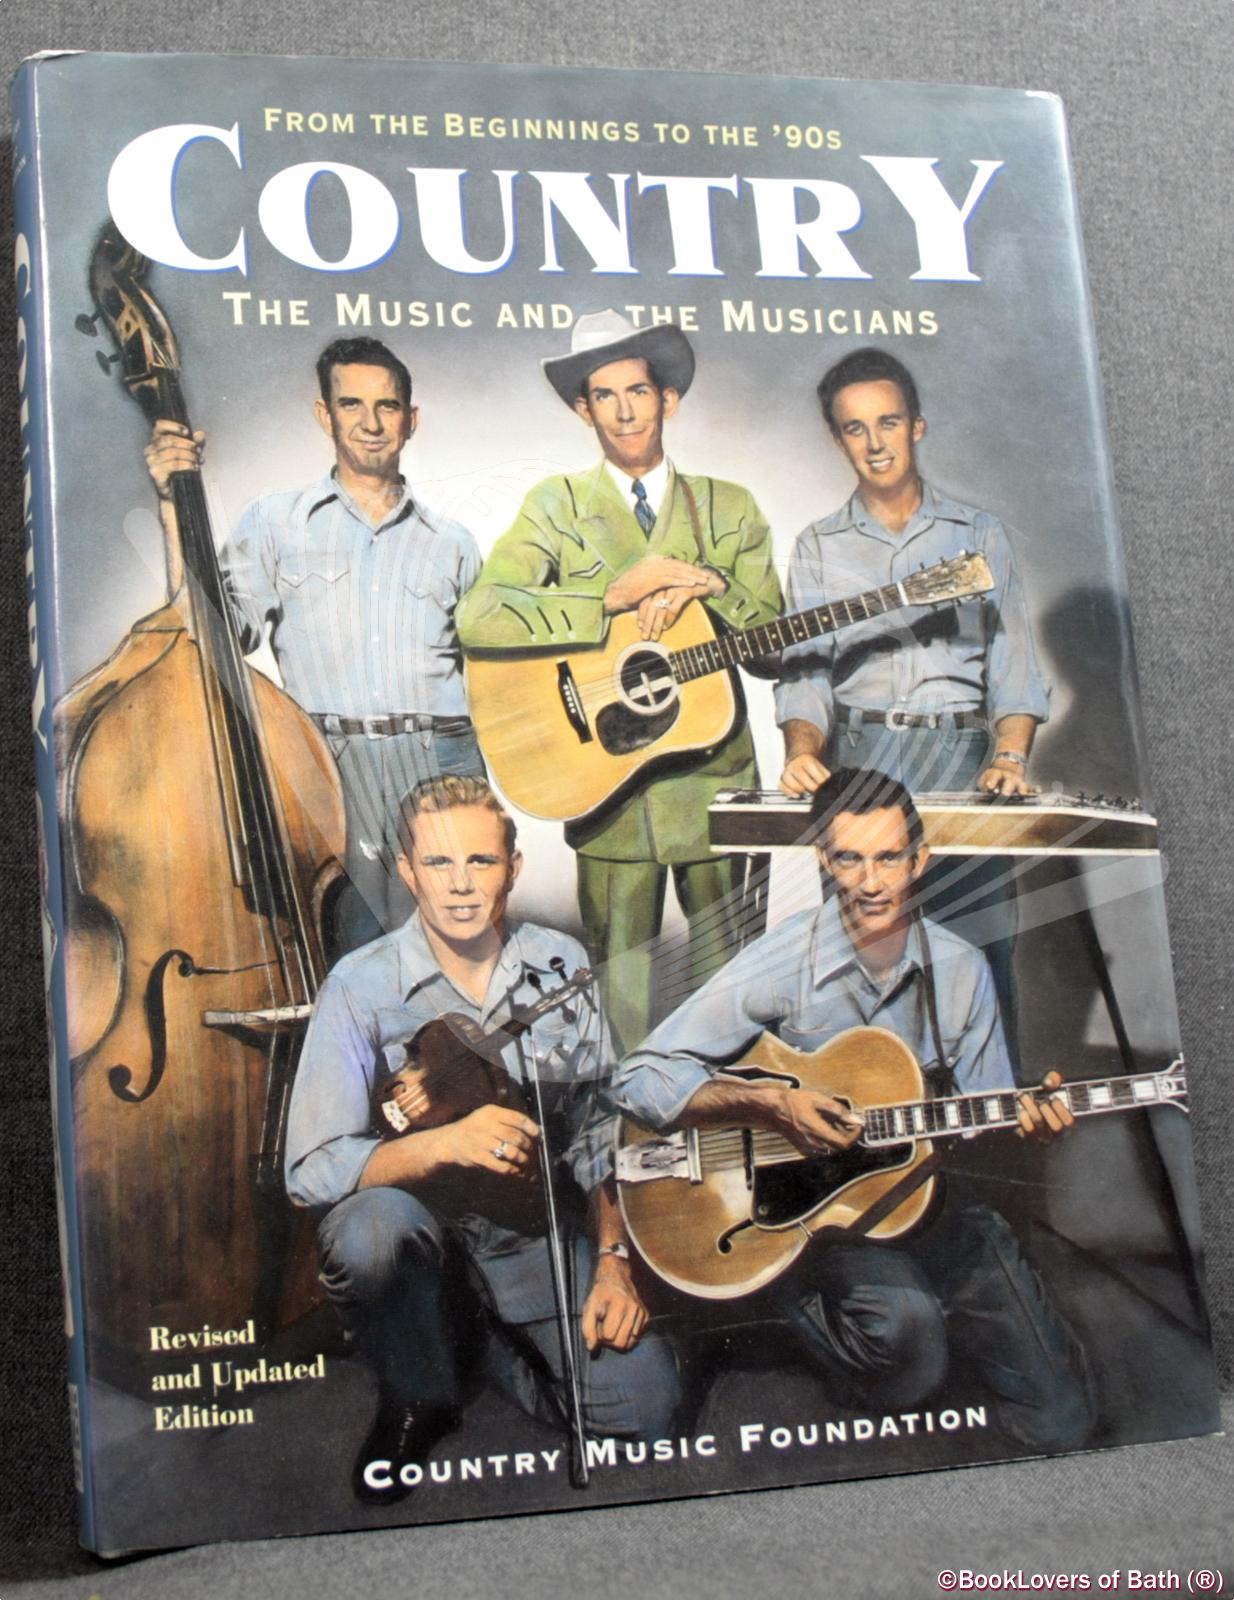 Country: The Music and The Musicians: From the Beginnings to the '90s - Edited by Paul Kingsbury, Alan Axelrod & Susan Costello